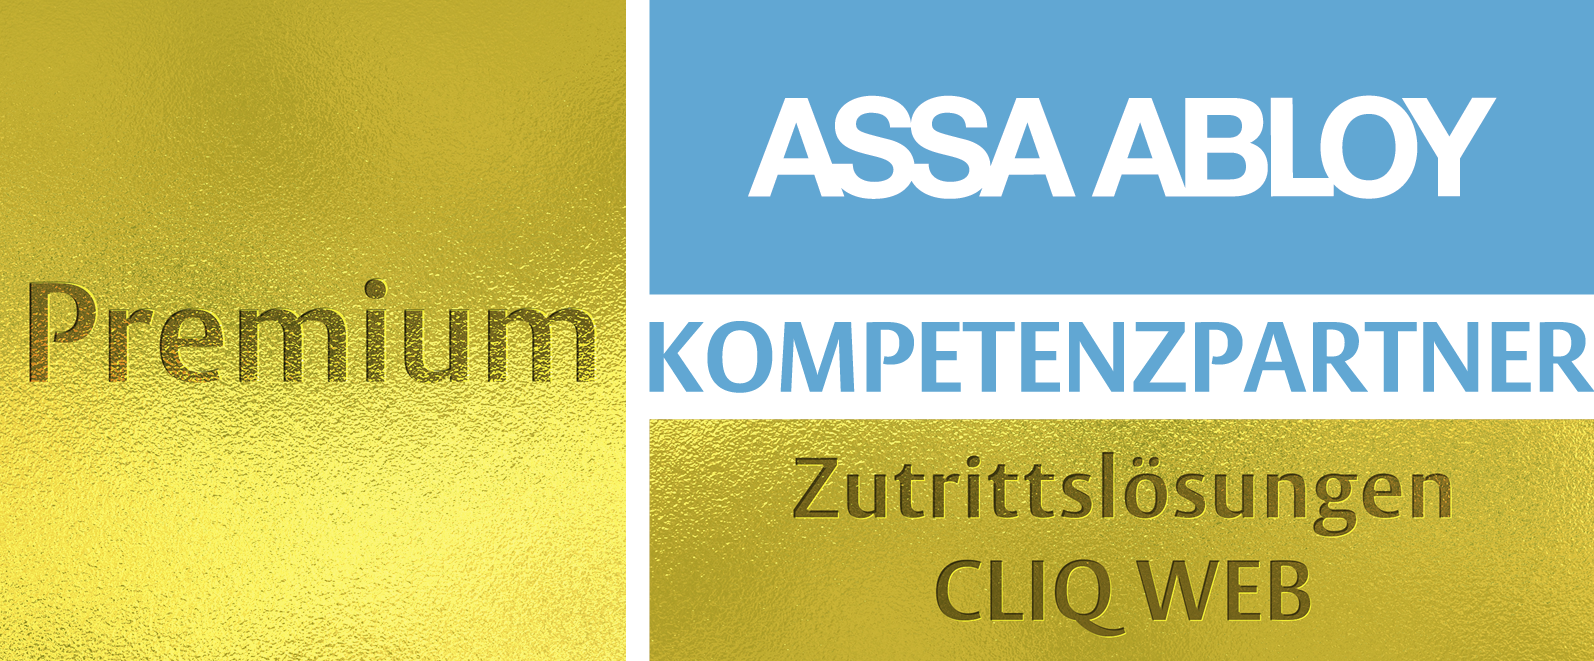 AssaAbloy Premium Partner 2019